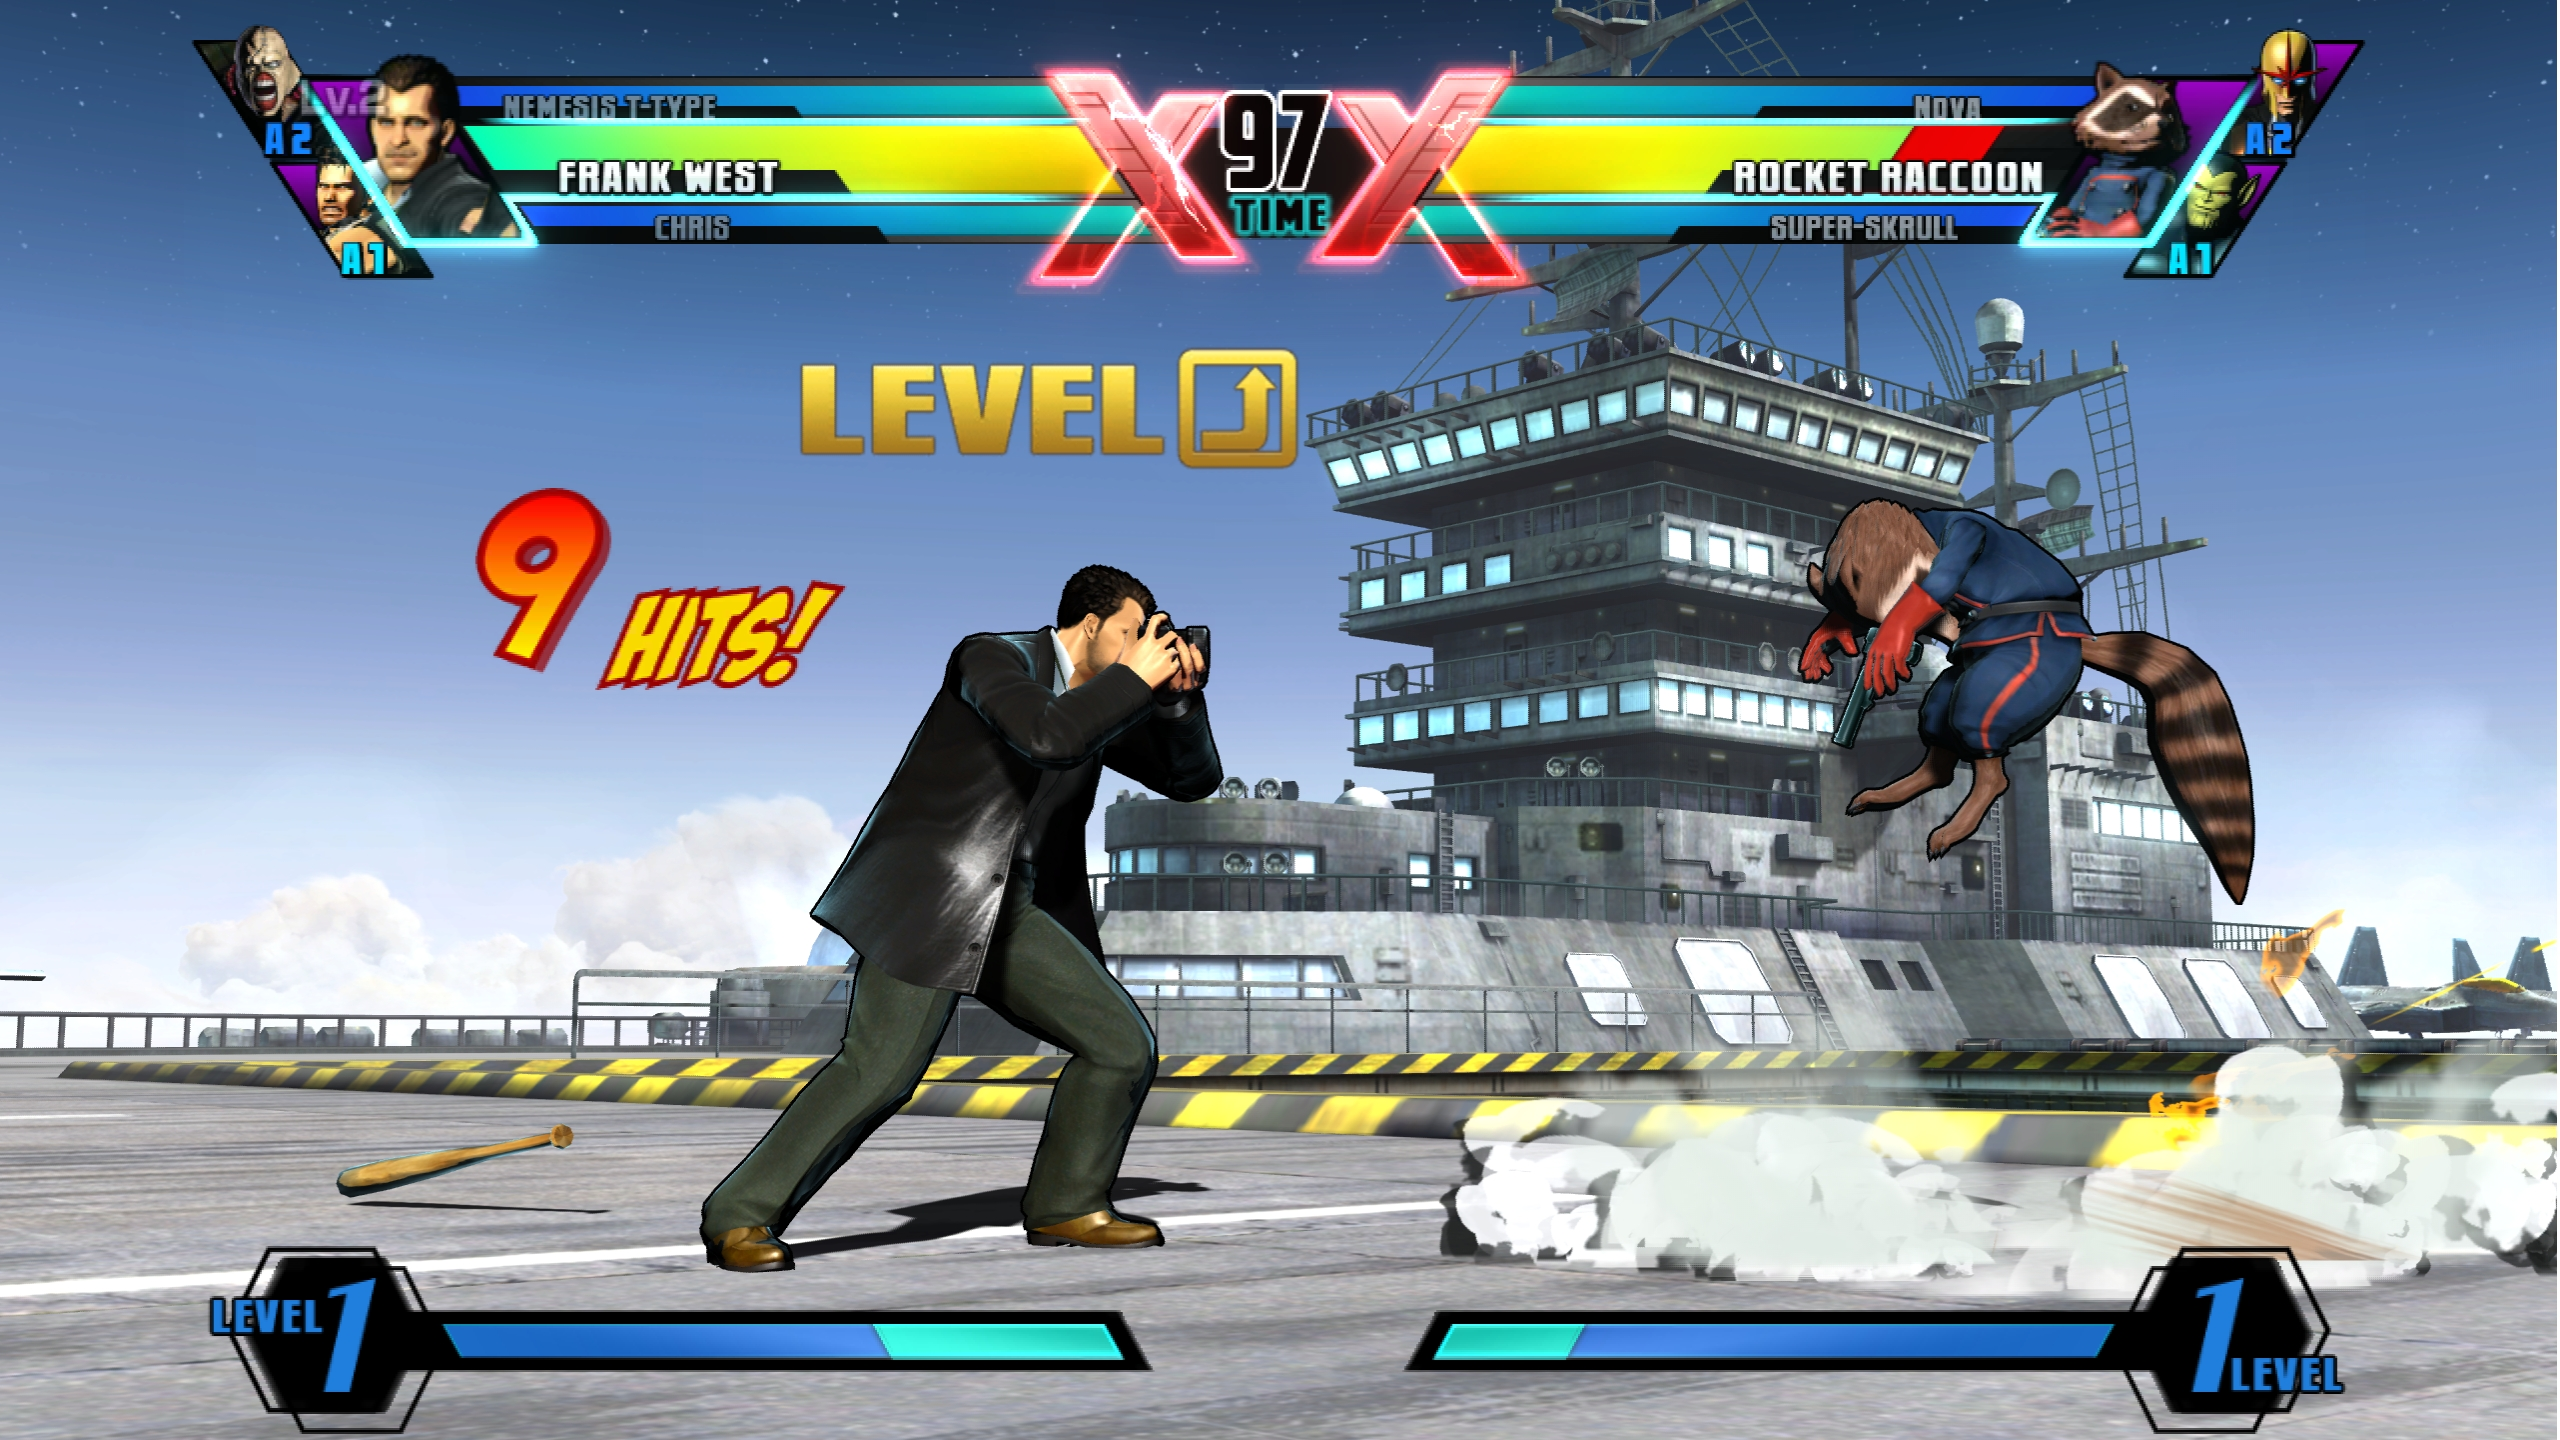 Frank West Ultimate Marvel vs Capcom 3